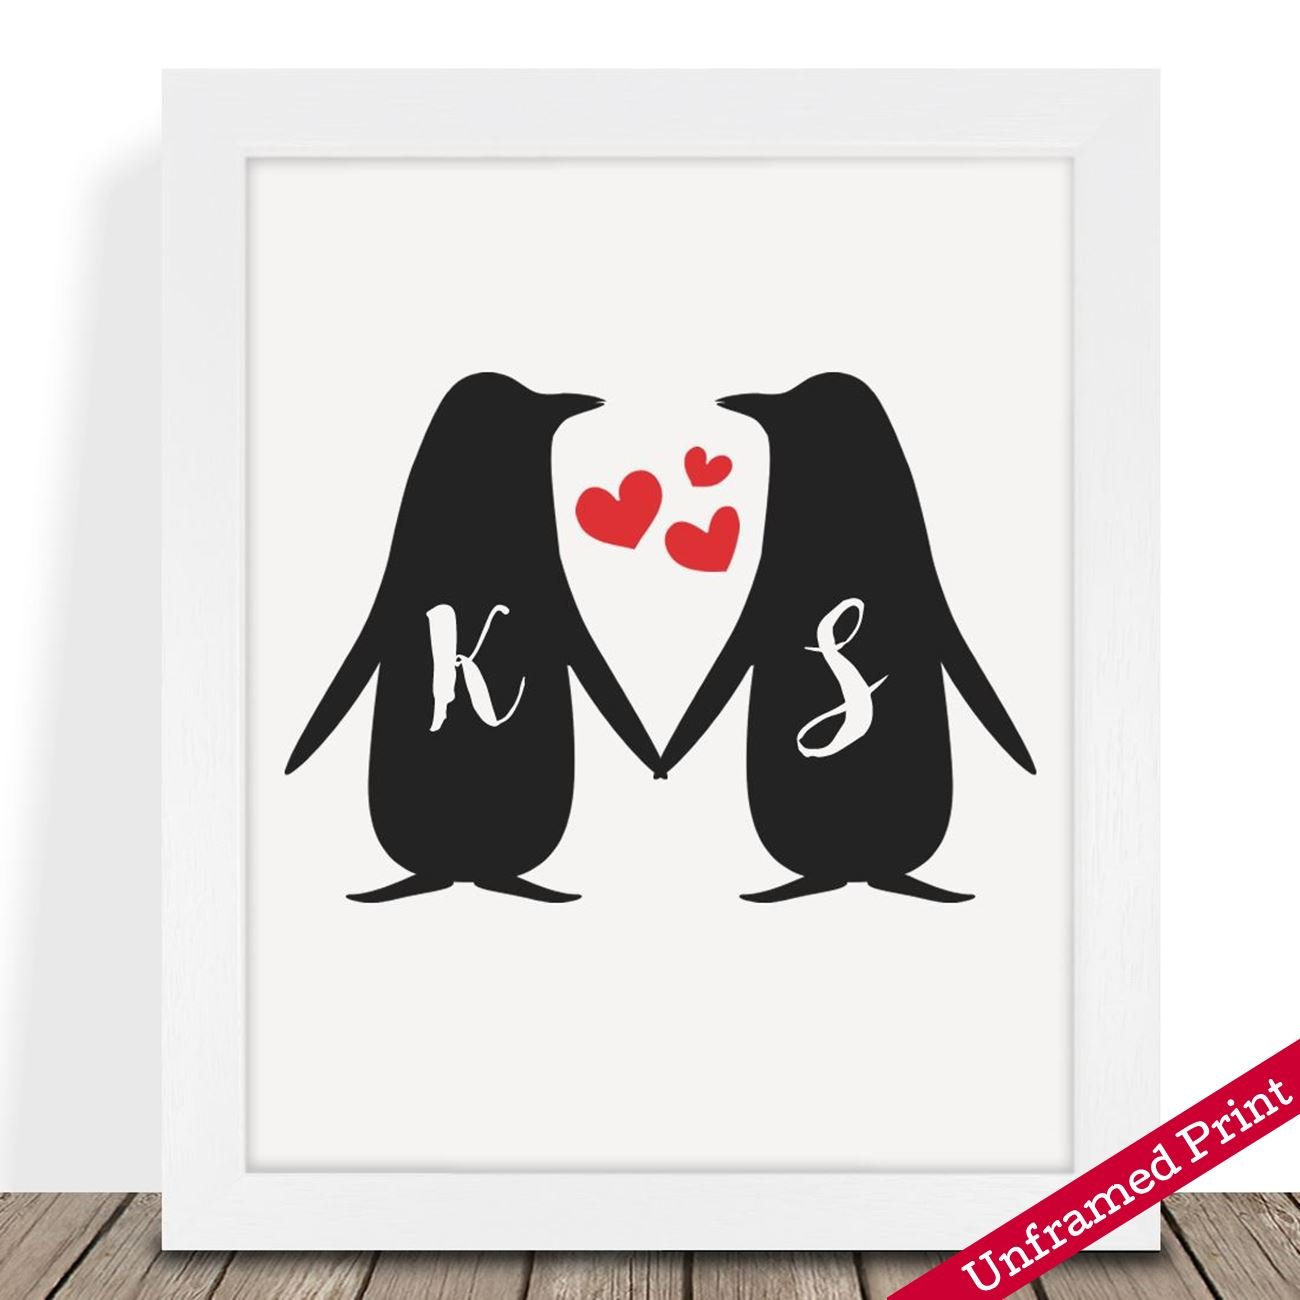 Personalised Presents Gifts For Him Her Husband Wife Couples Boyfriend Girlfriend Wedding Anniversary Valentines Day Christmas Xmas Love Penguins Initials Prints Posters Wall Art Home Decor Superb Printz